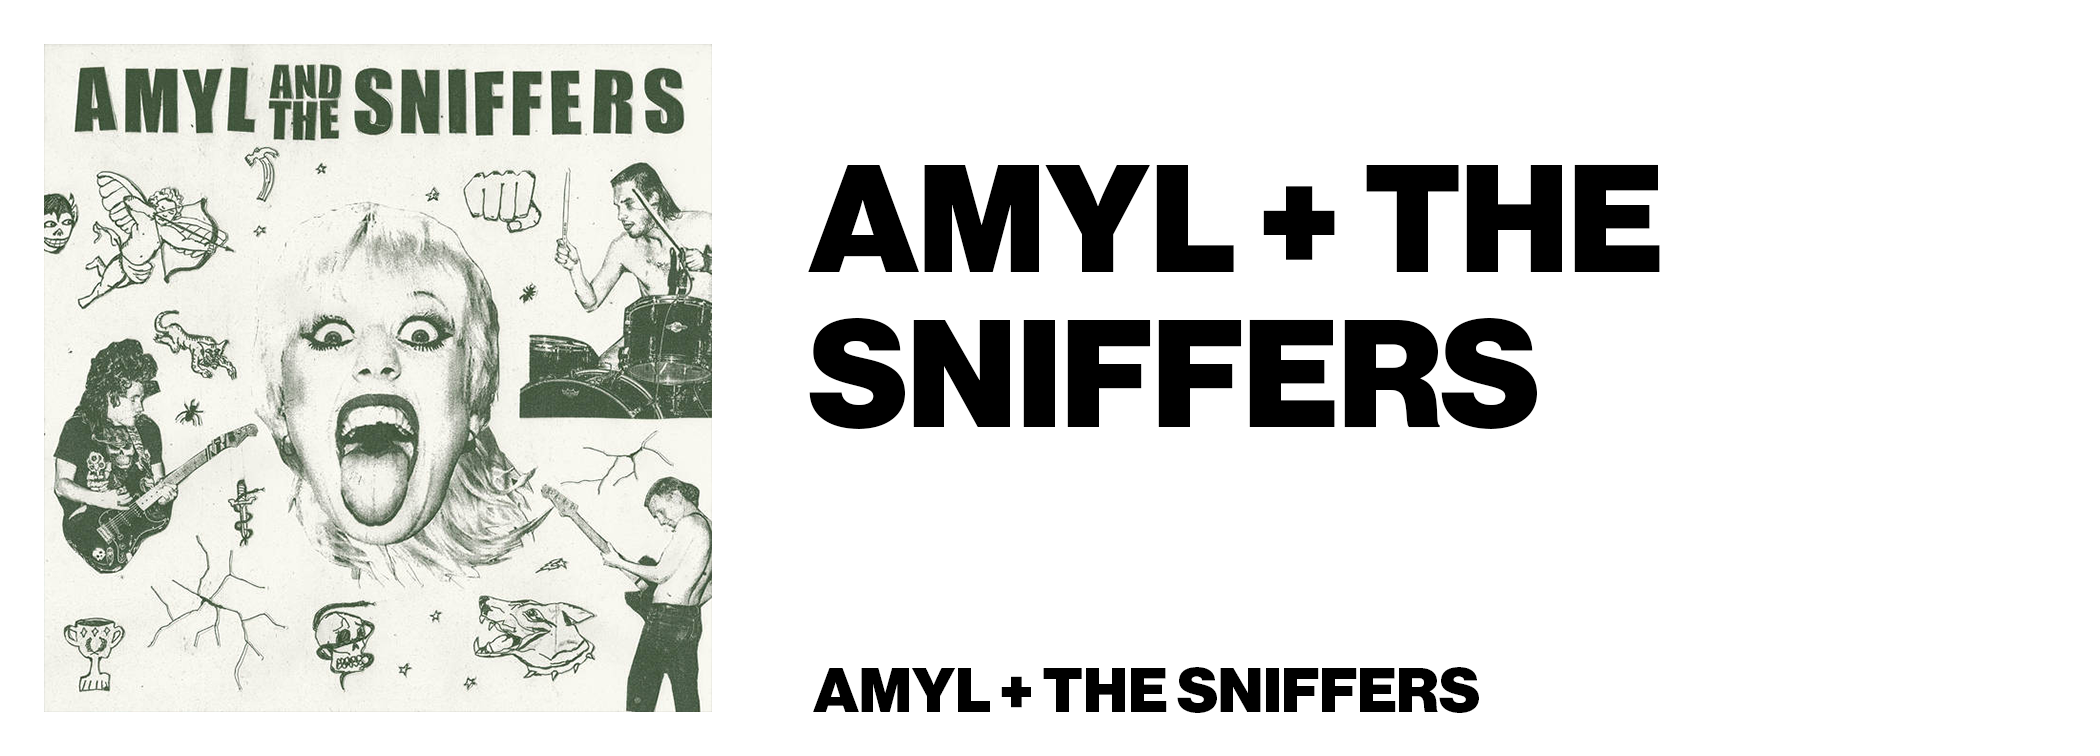 Amyl + The Sniffers